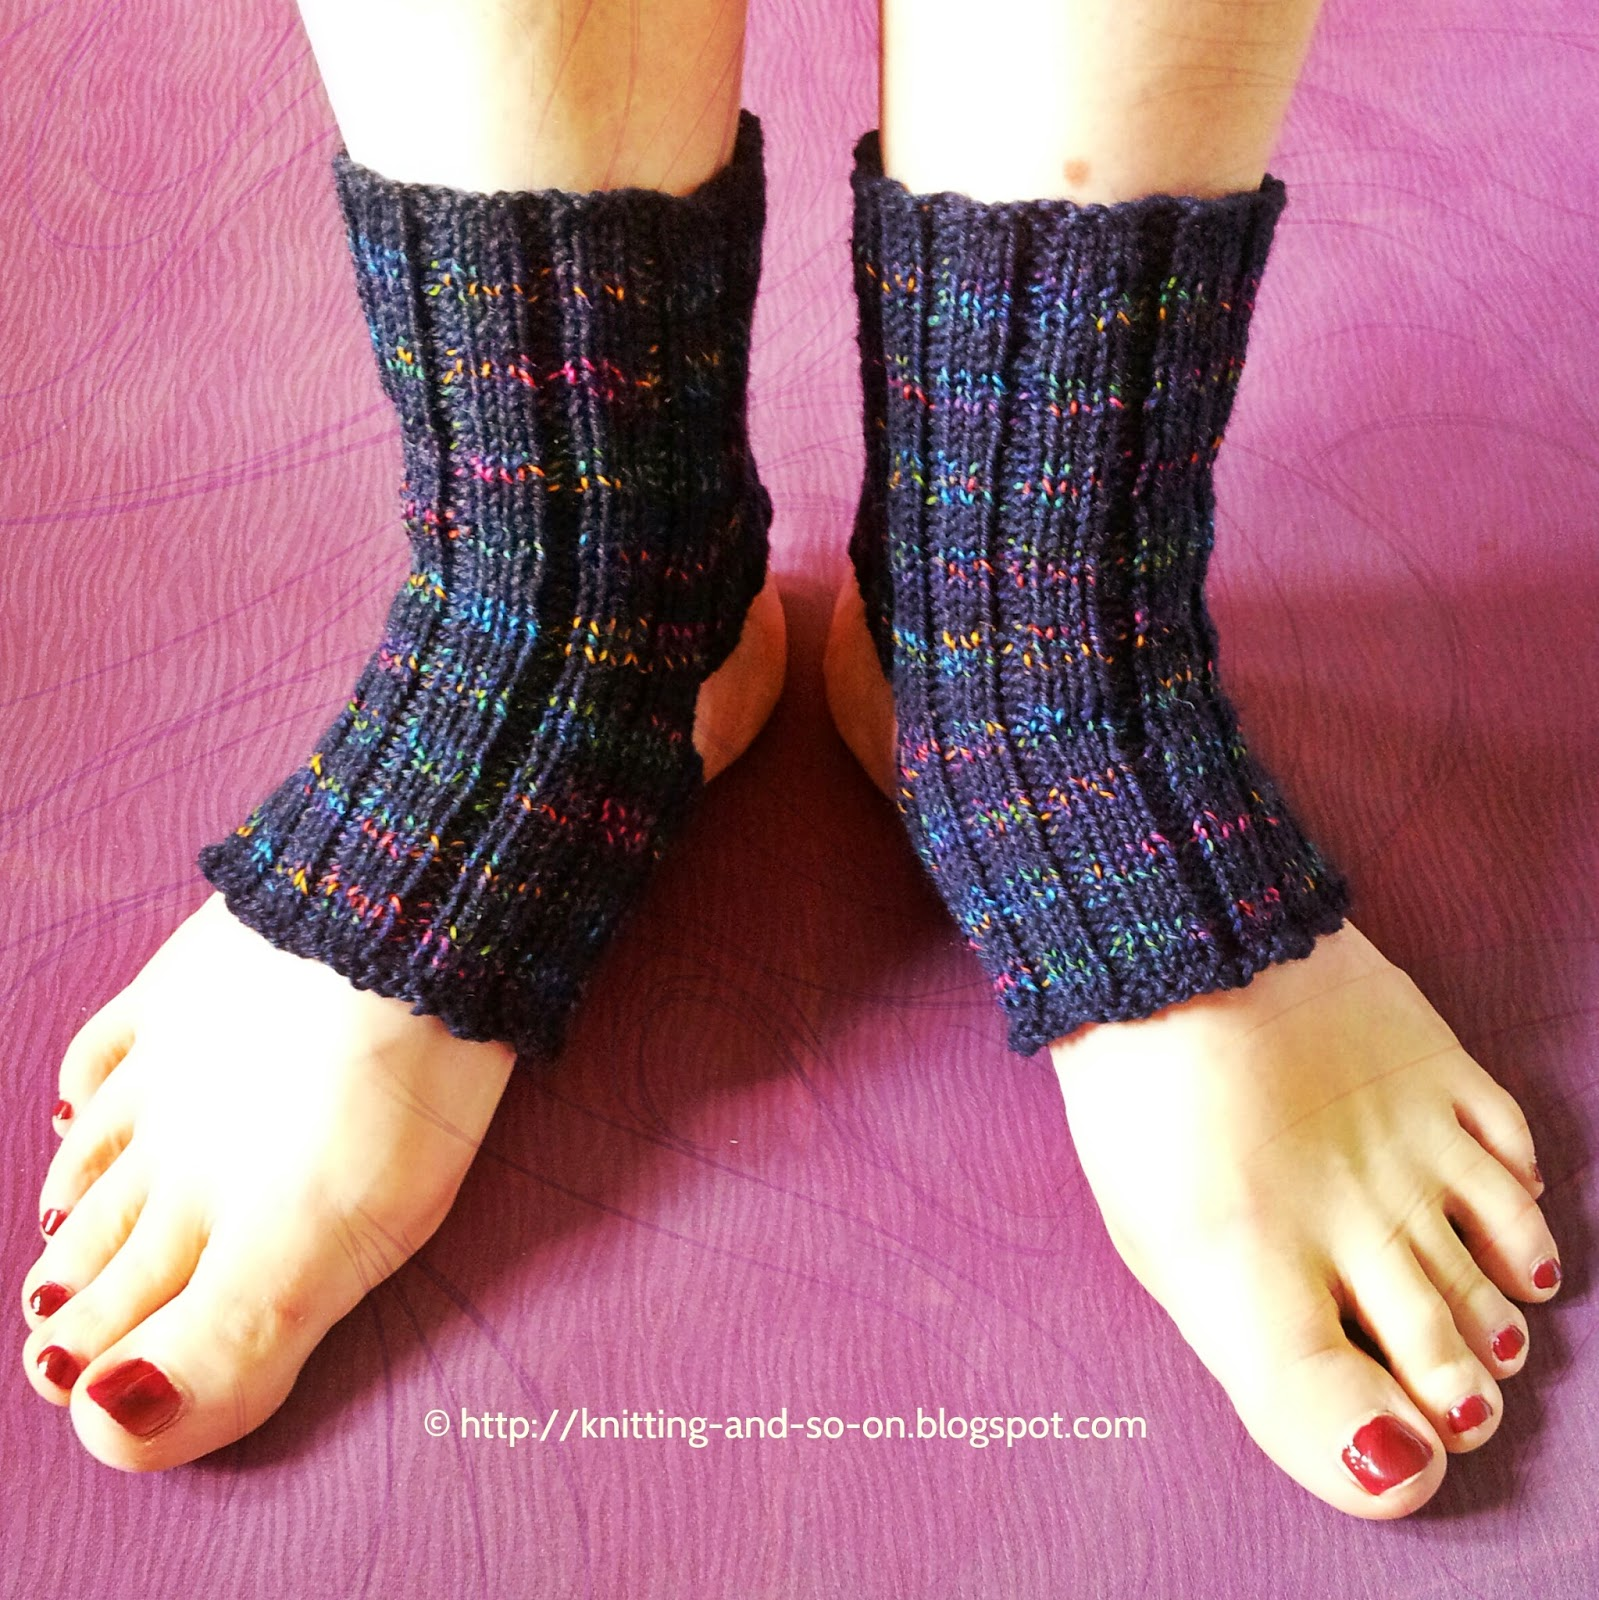 Yoga socks variations, free knitting pattern